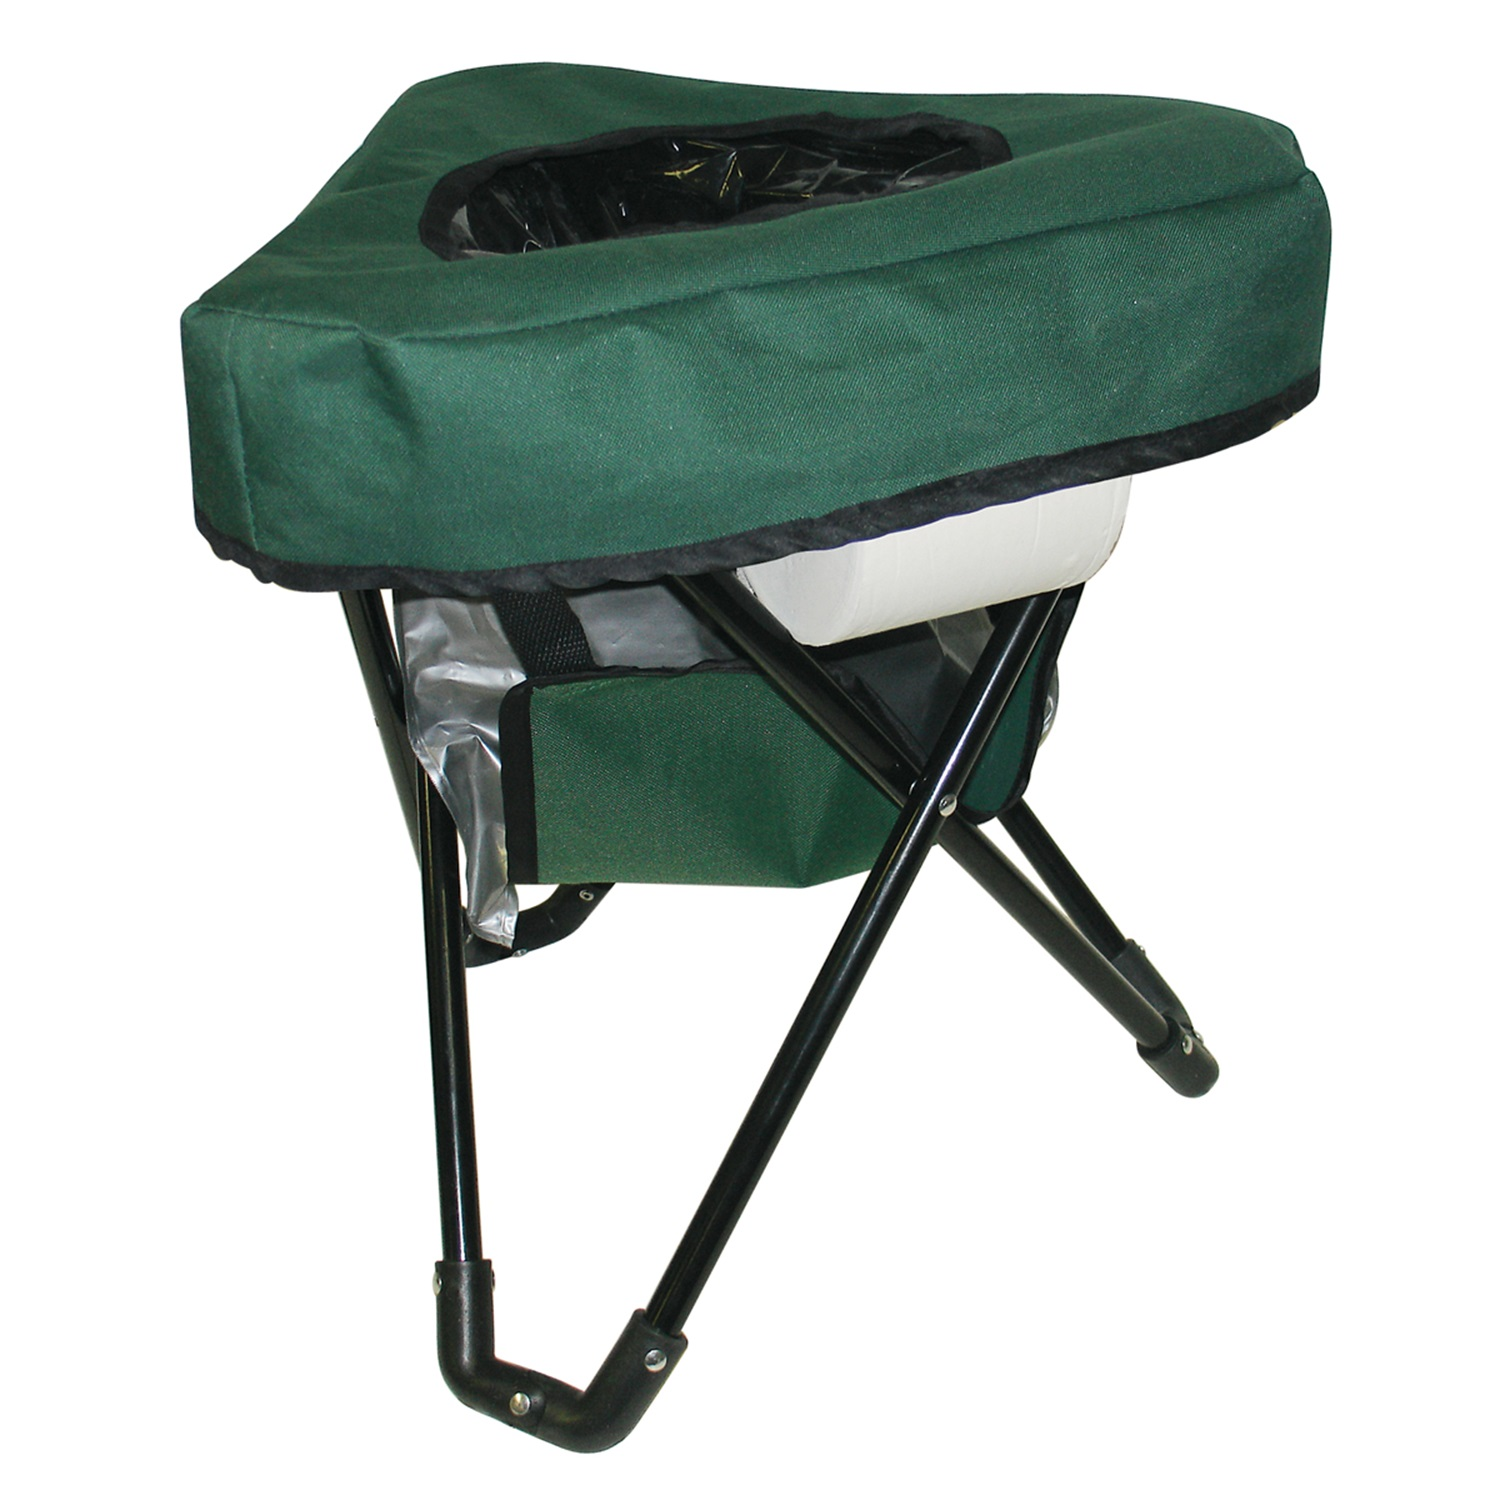 vision fishing chair ikea living room chairs reliance tri to go portable toilet camping